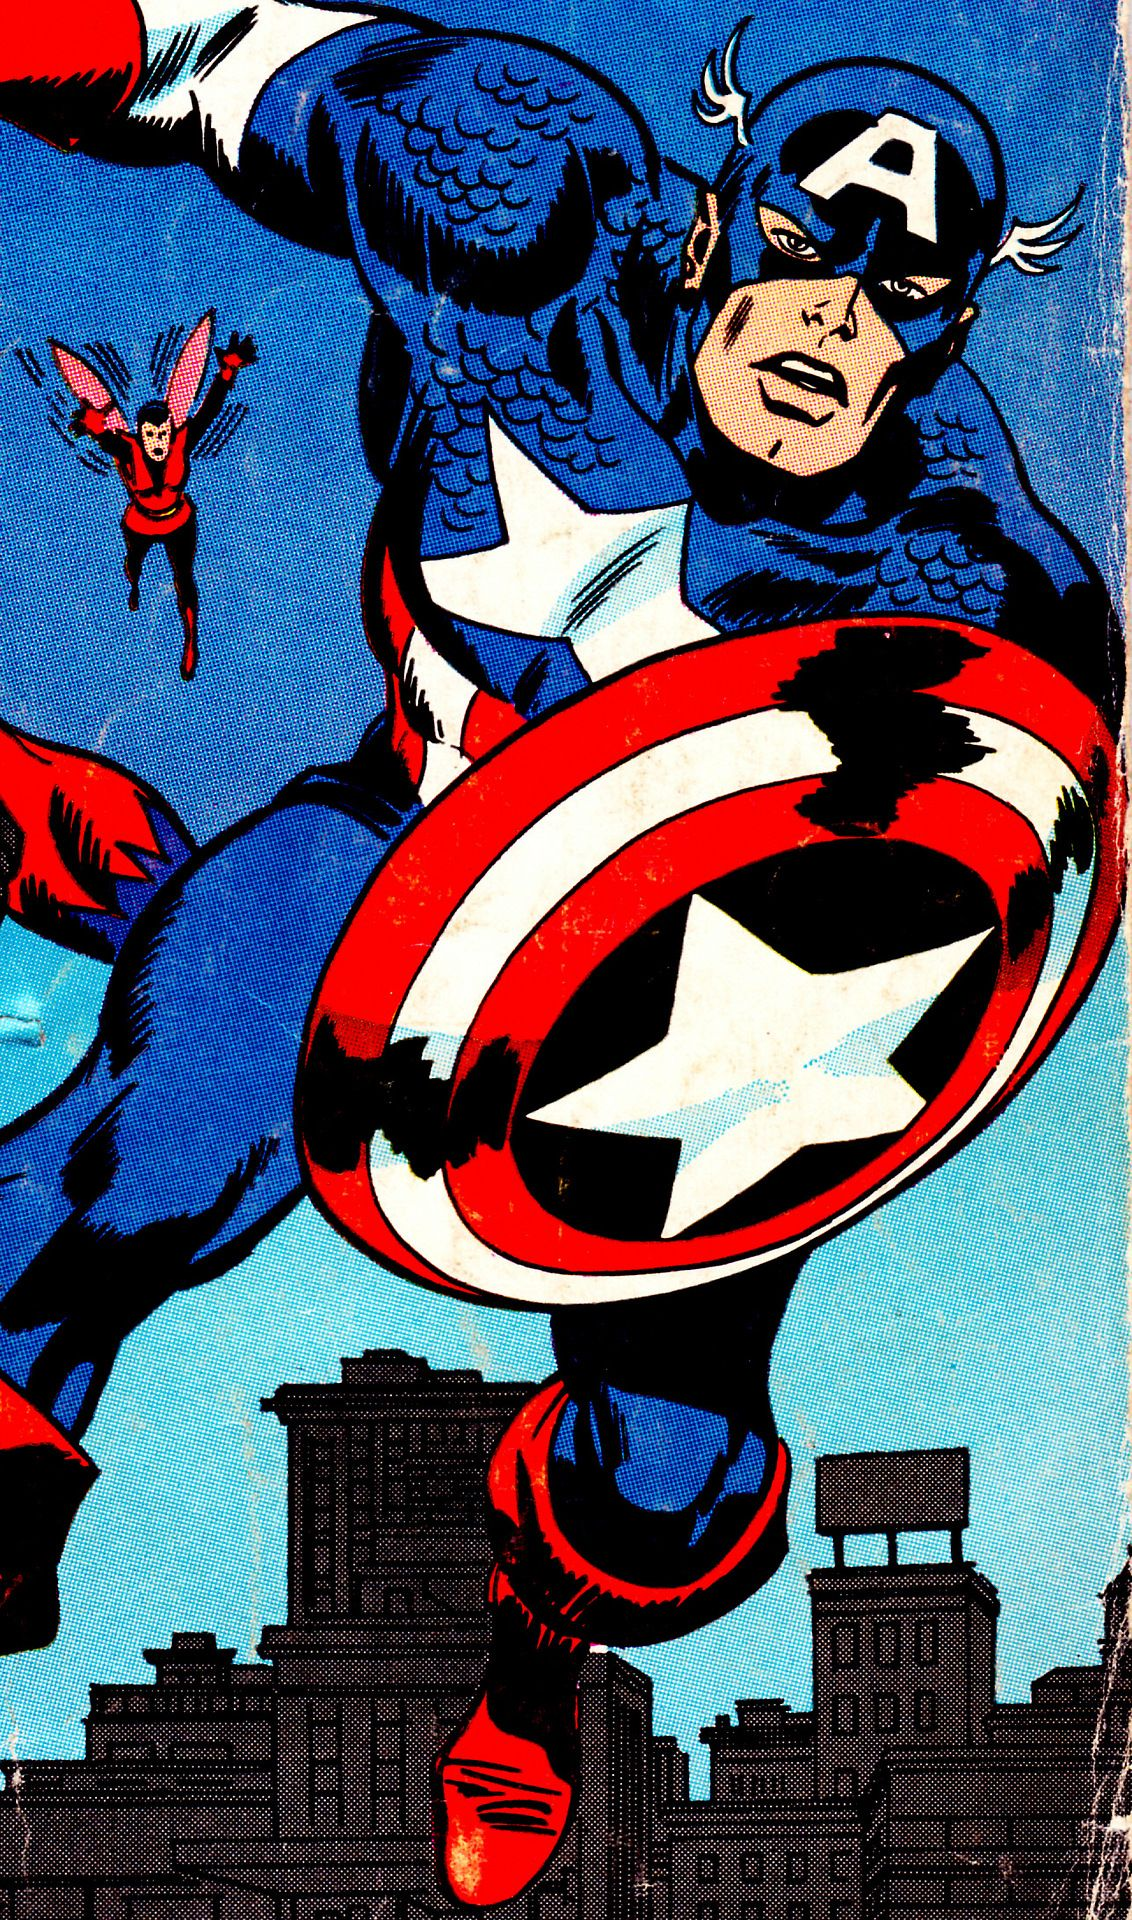 Captain America & The Wasp by John Buscema, Frank Giacoia & Sam Rosen